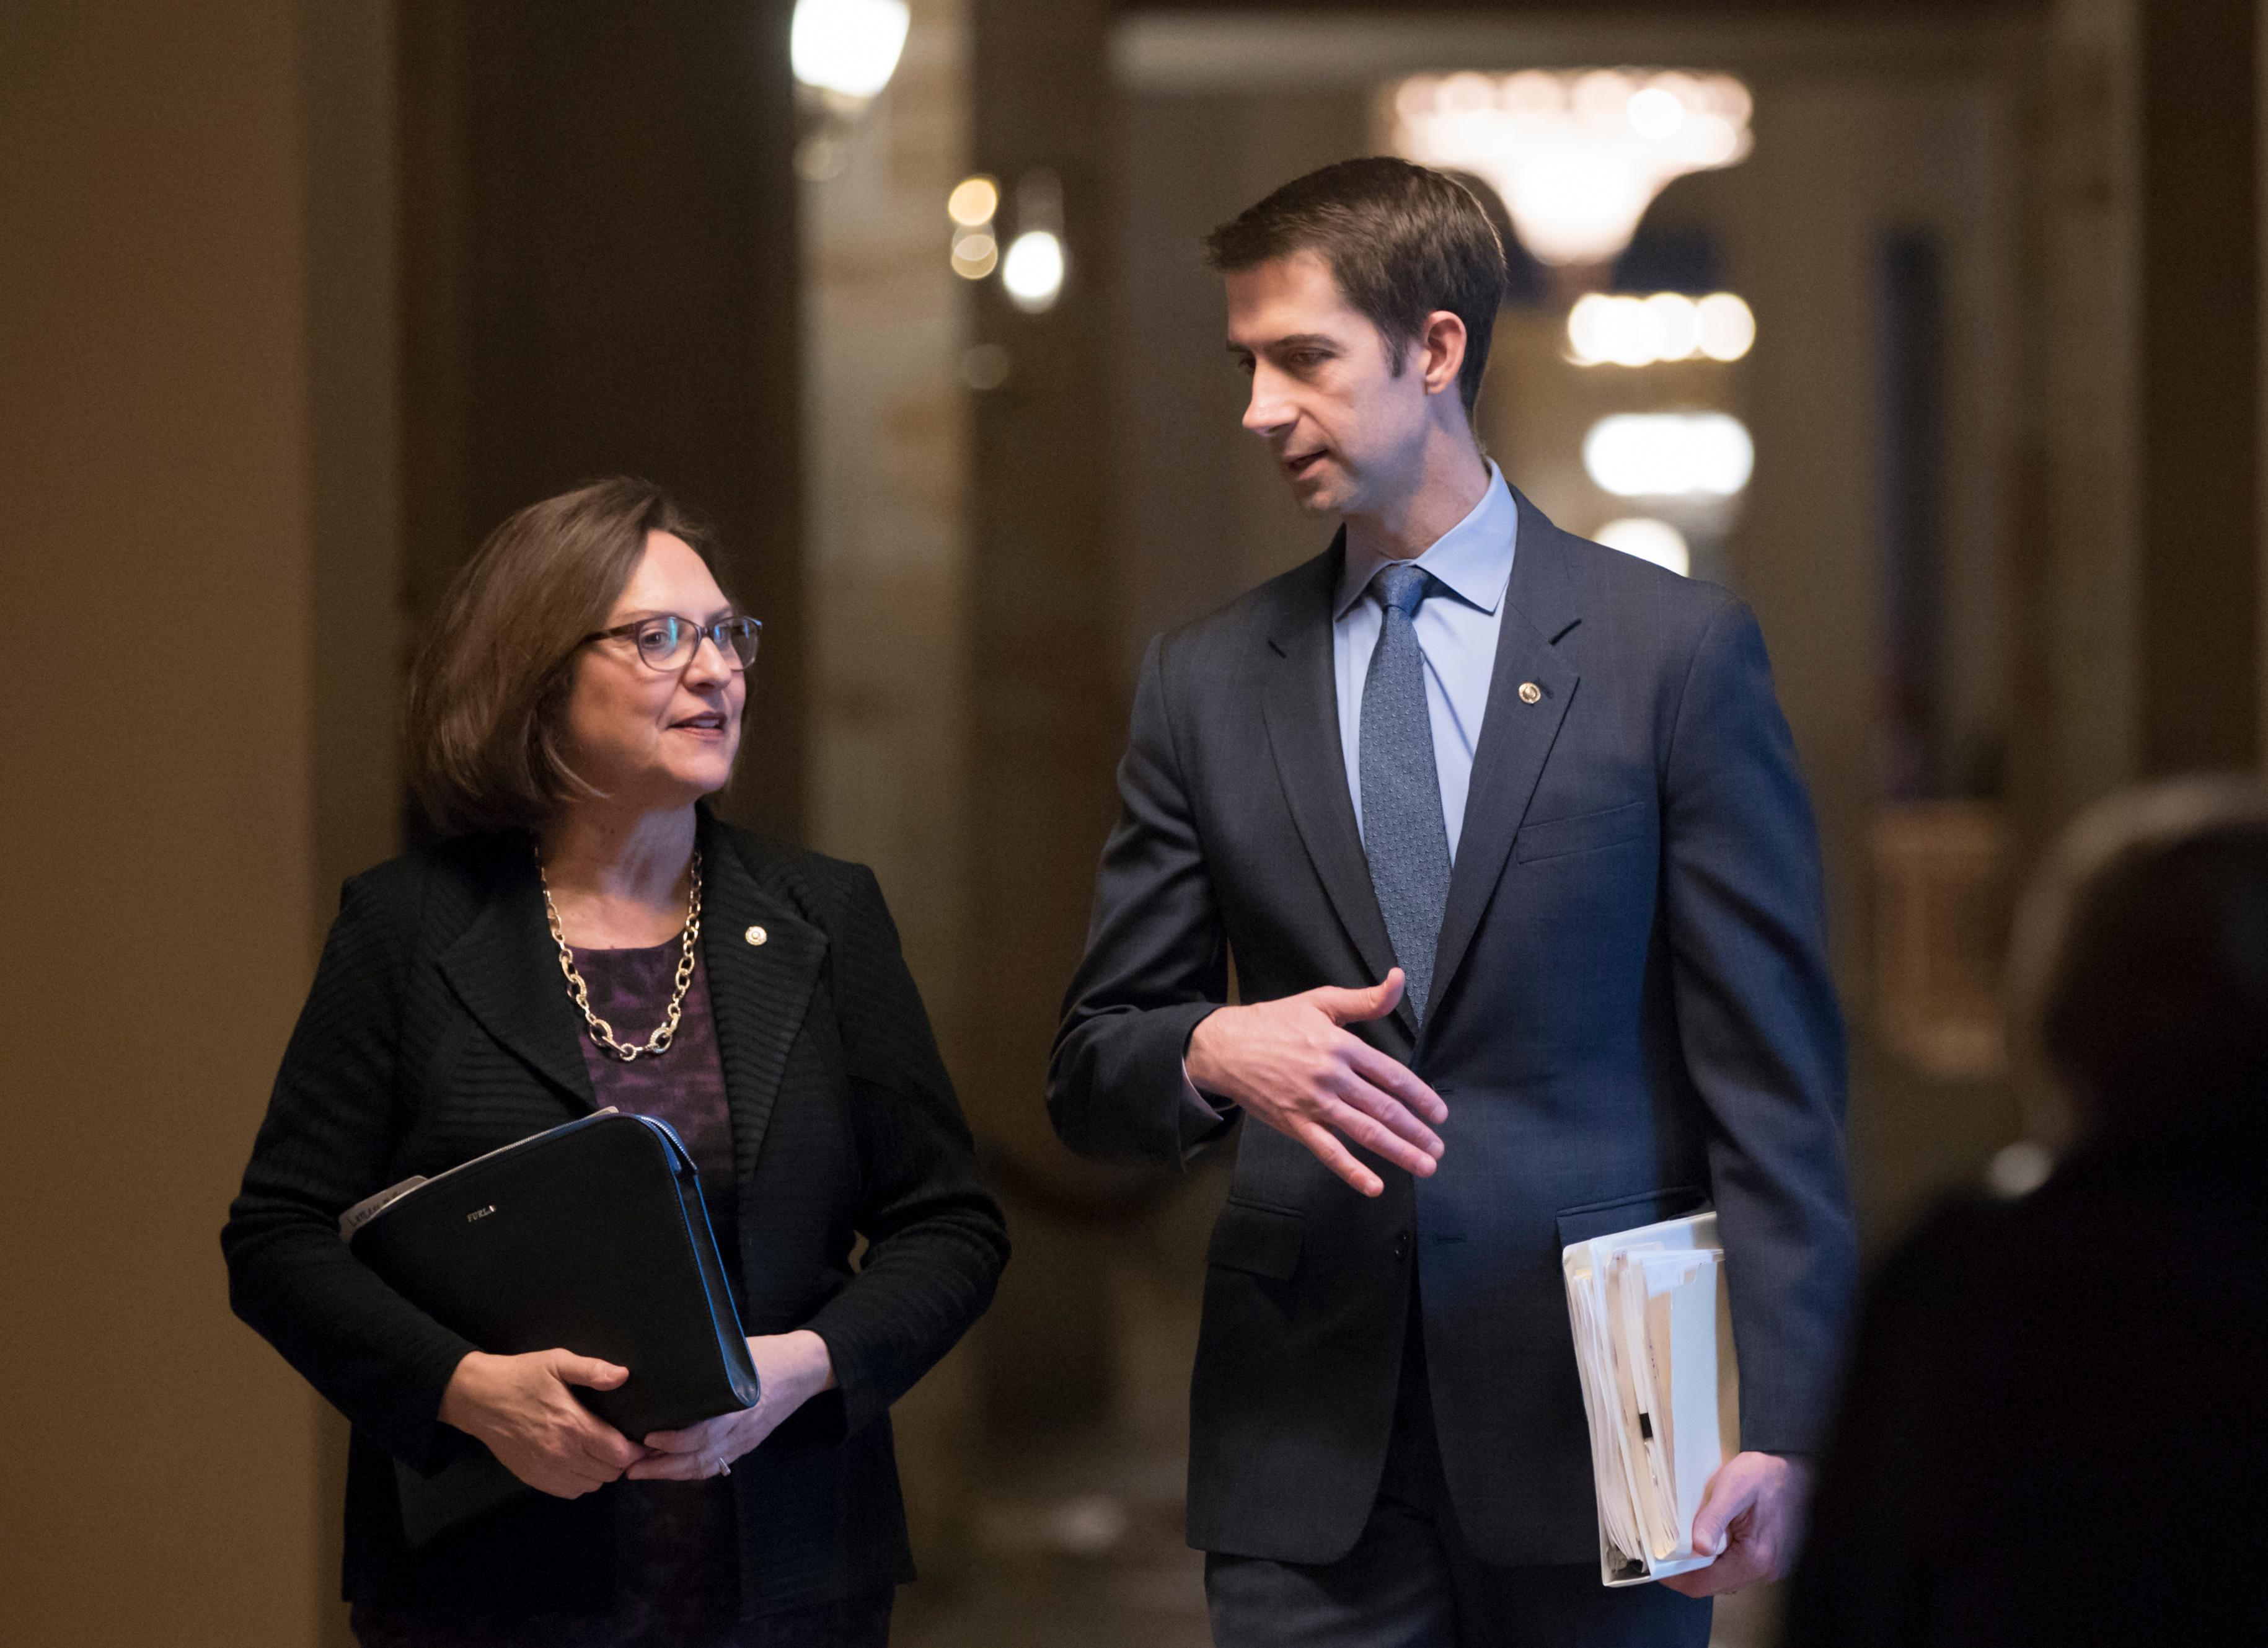 Sen. Deb Fischer, R-Neb., left, and Sen. Tom Cotton, R-Ark., leave the office of Senate Majority Leader Mitch McConnell, R-Ky., just before the announcement of an agreement in the Senate on a two-year, almost $400 billion budget deal that would provide Pentagon and domestic programs with huge spending increases, at the Capitol in Washington, Wednesday, Feb. 7, 2018. (AP Photo/J. Scott Applewhite)